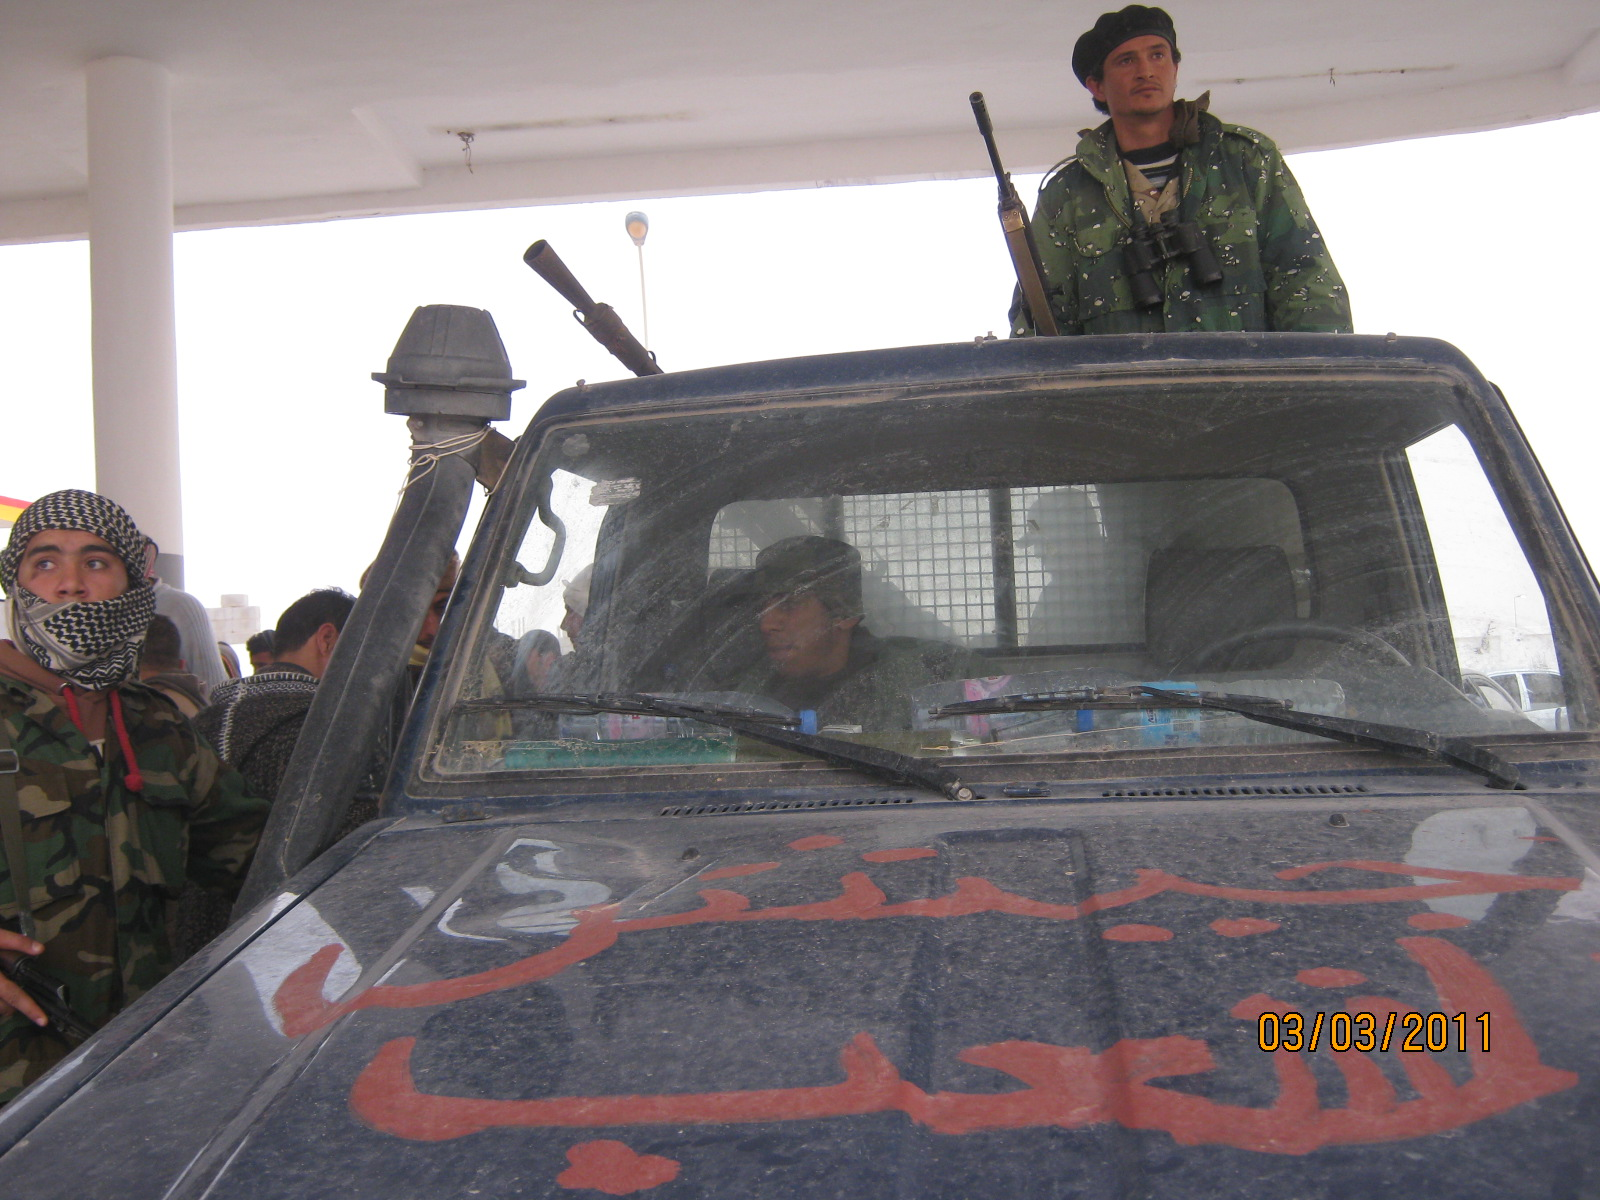 The revolution quickly turned into armed confrontations with Gaddafi forces - photo taken in March 2011